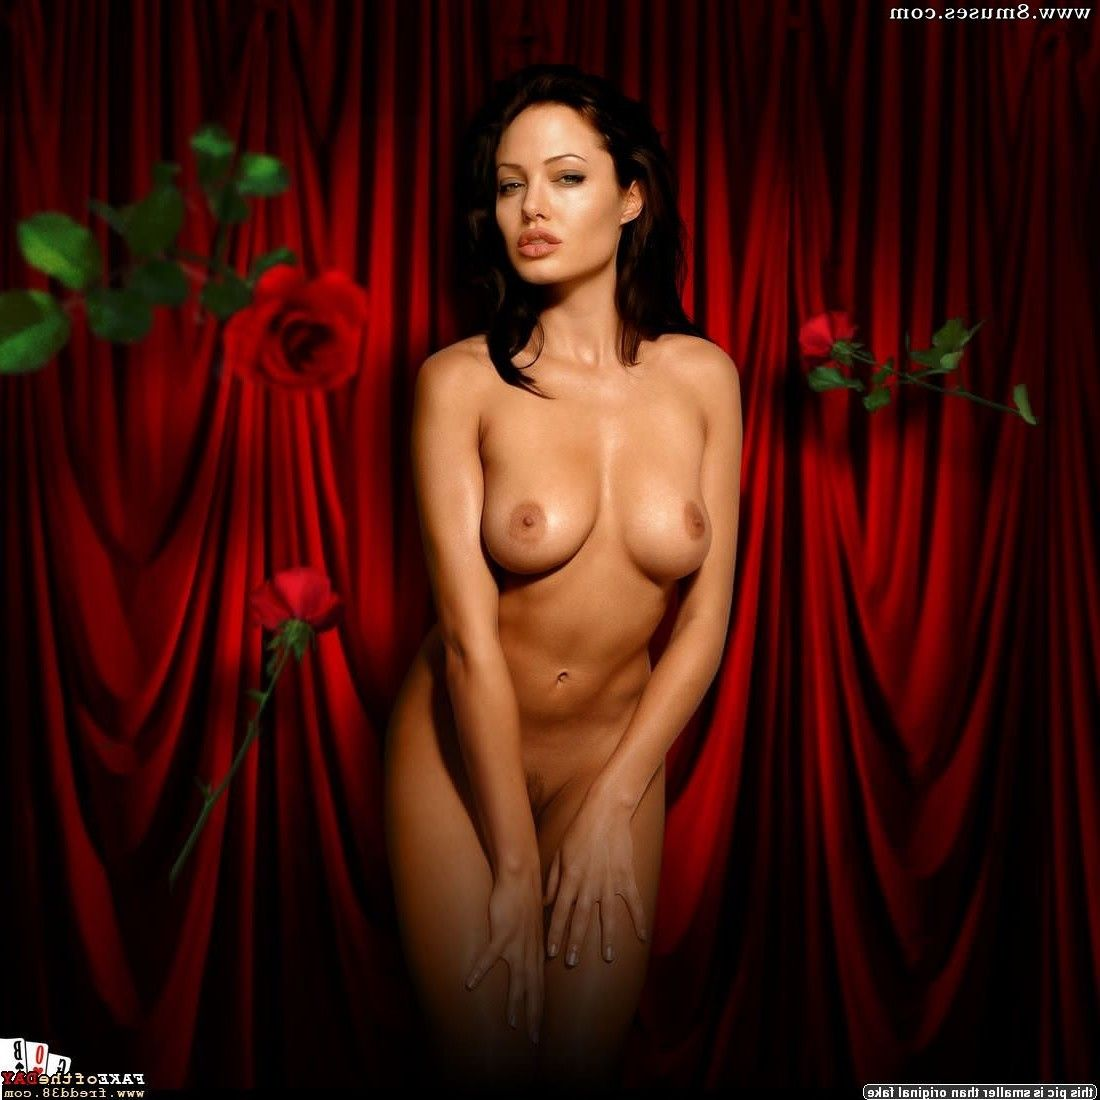 Fake-Celebrities-Sex-Pictures/Angelina-Jolie Angelina_Jolie__8muses_-_Sex_and_Porn_Comics_109.jpg